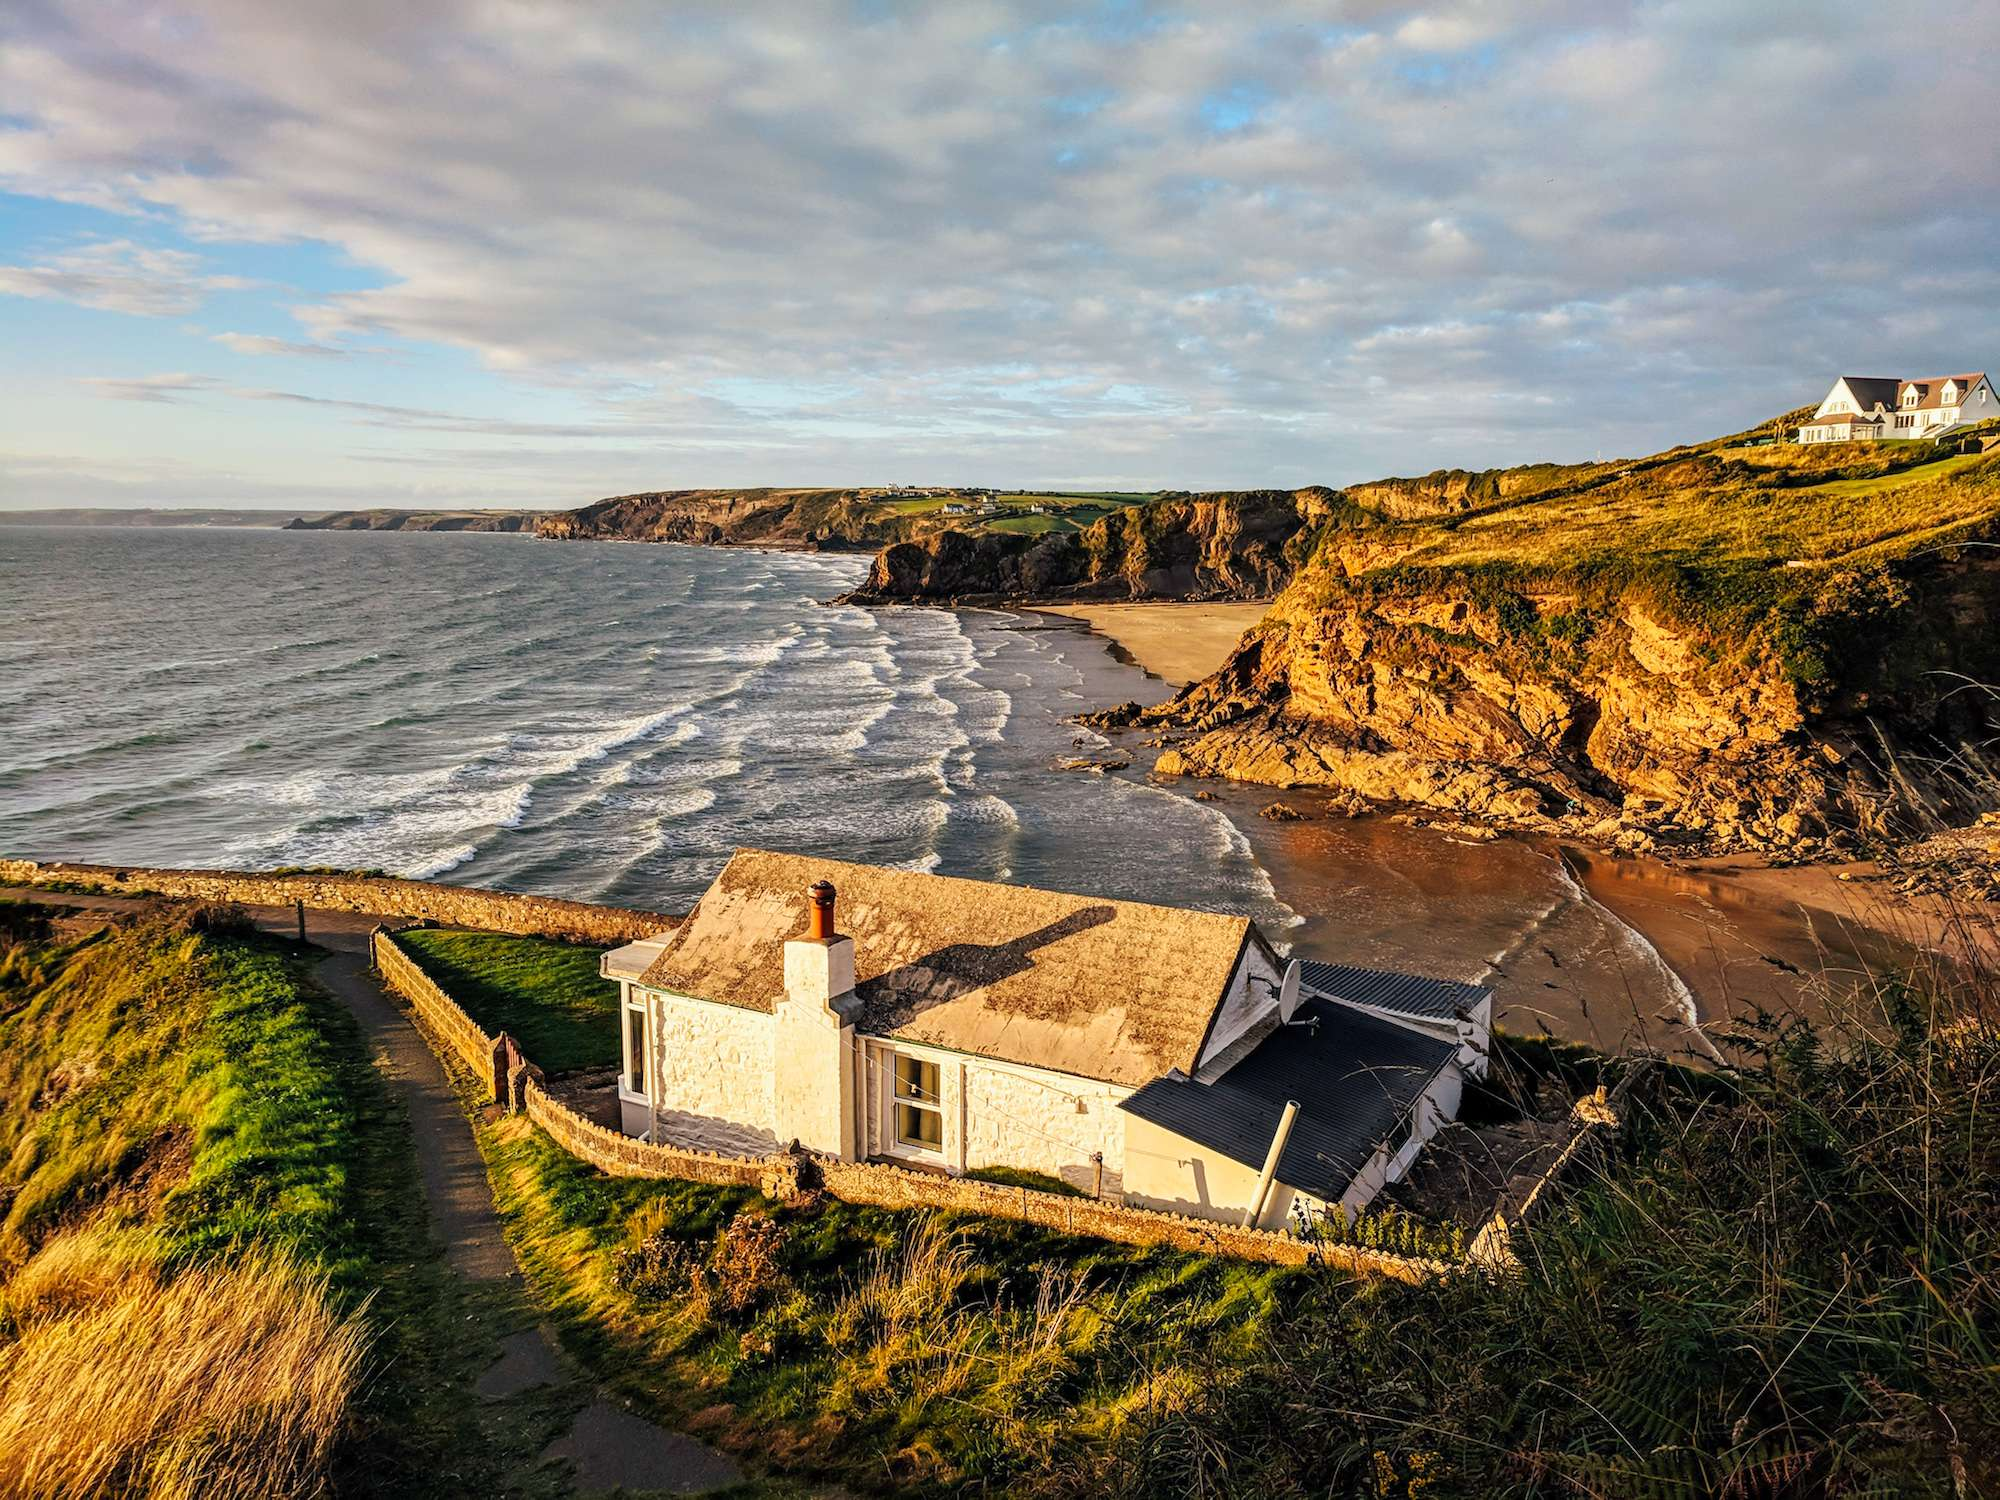 Marvelous Cottages With Hot Tubs In Wales Homeaway Best Image Libraries Thycampuscom